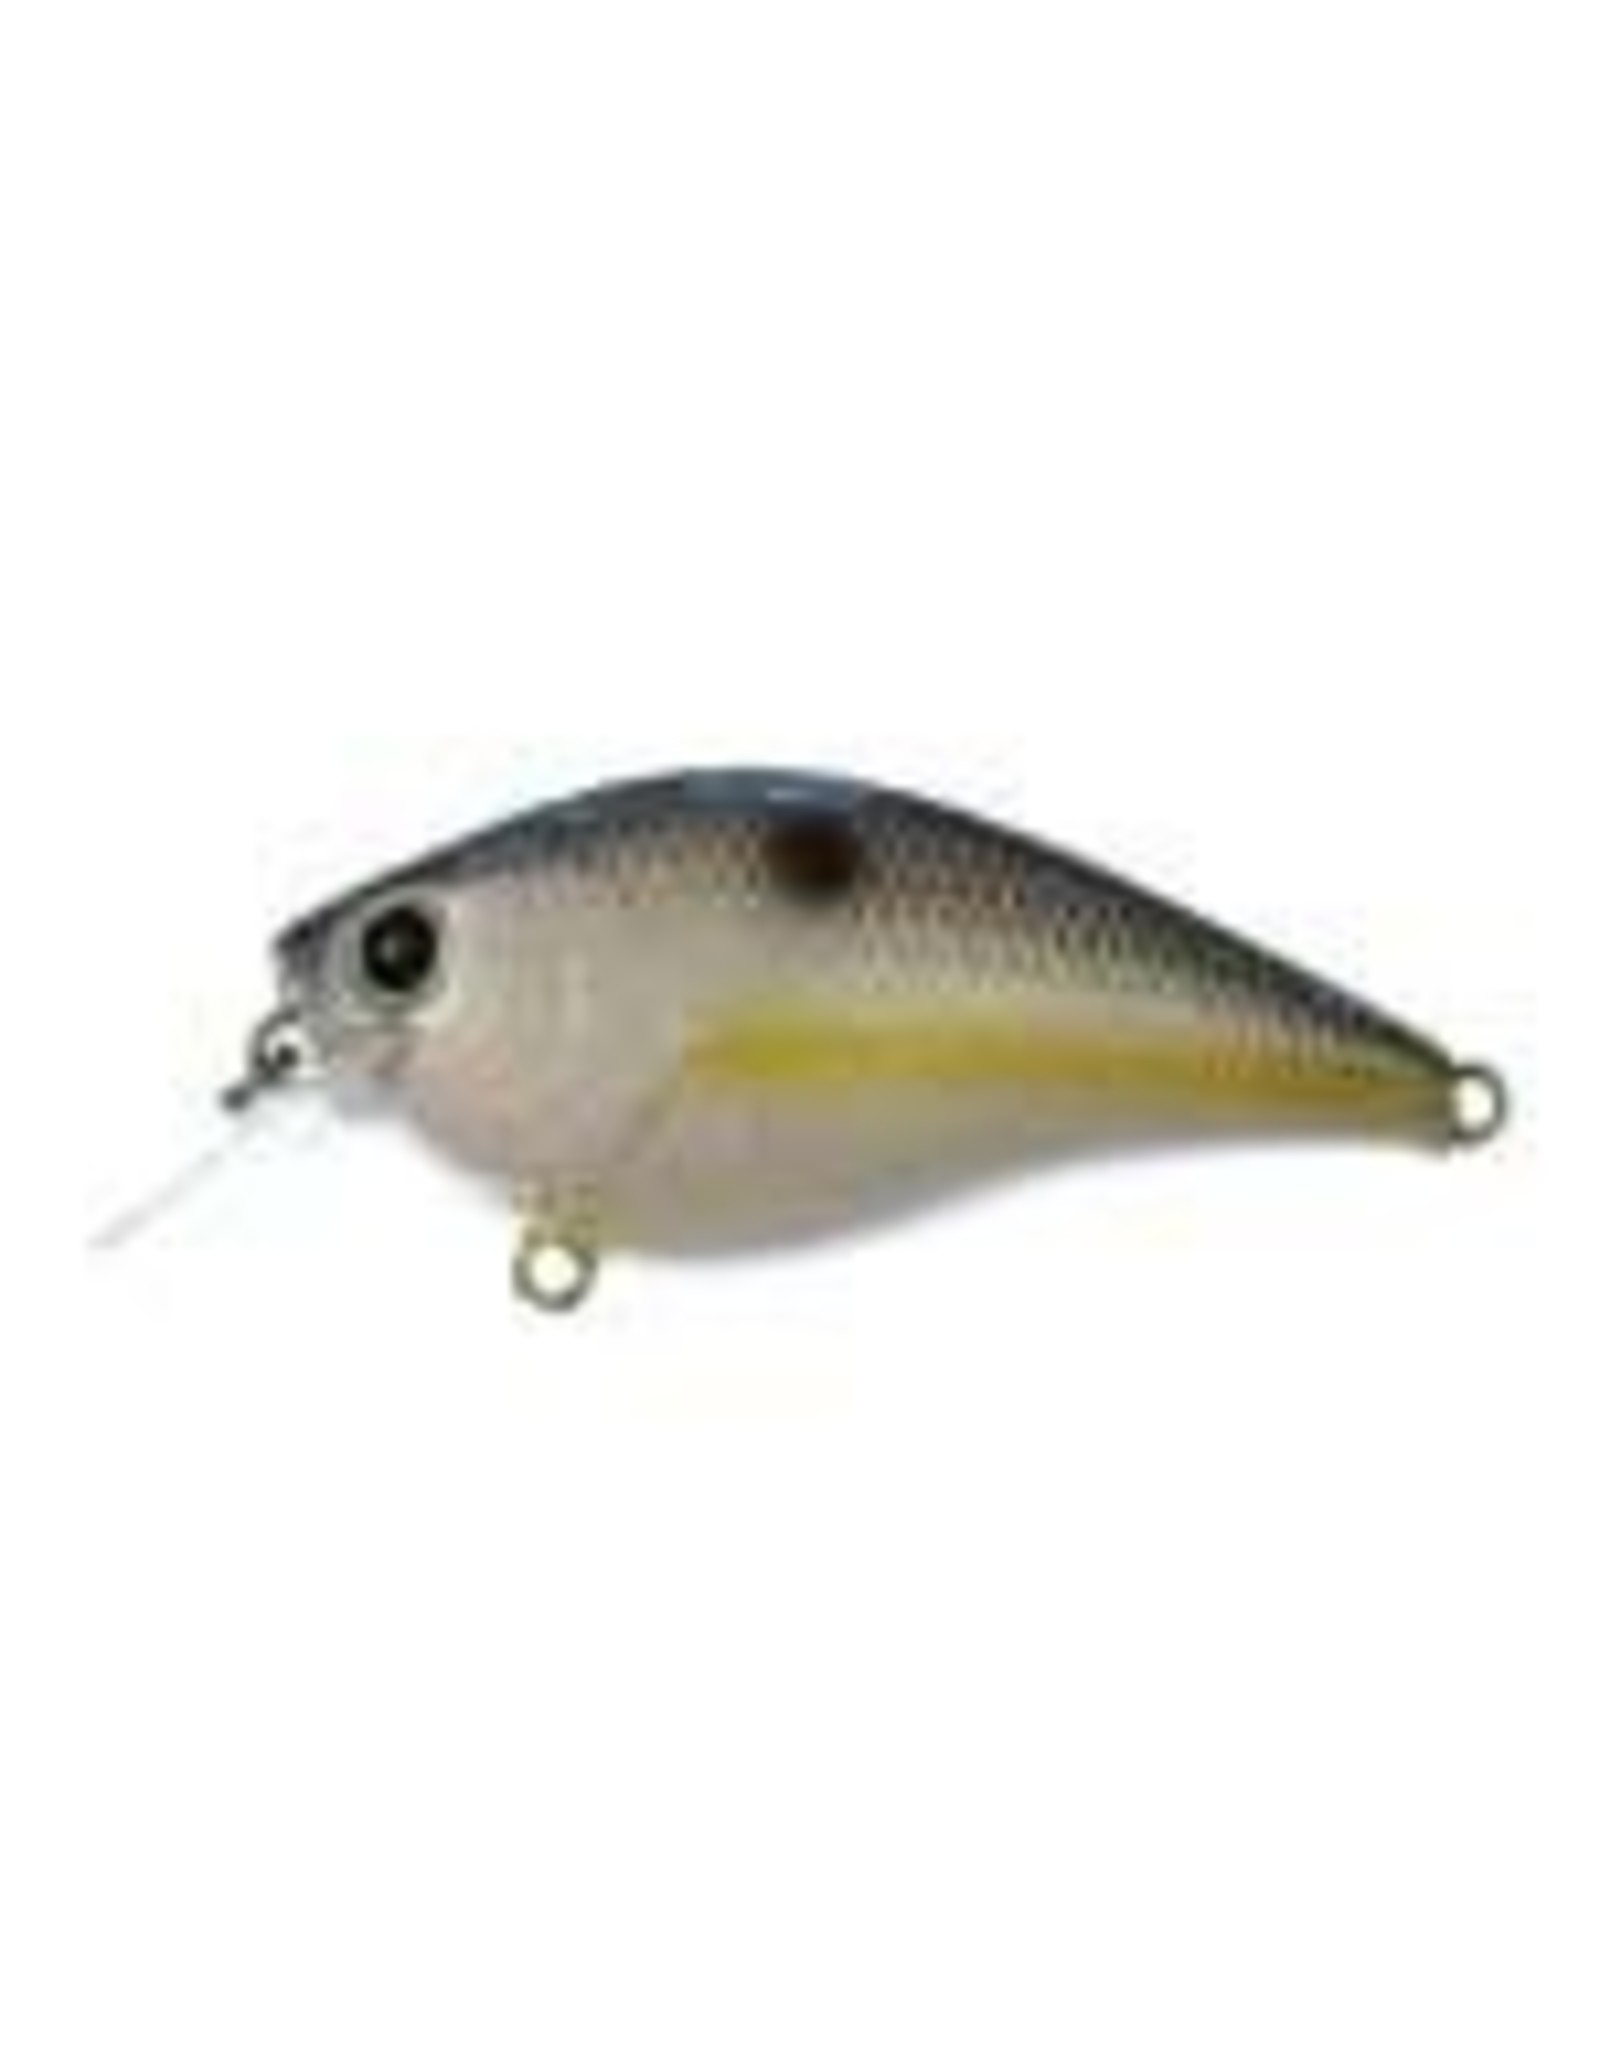 Lucky Craft LC1.5 Floating Crankbait